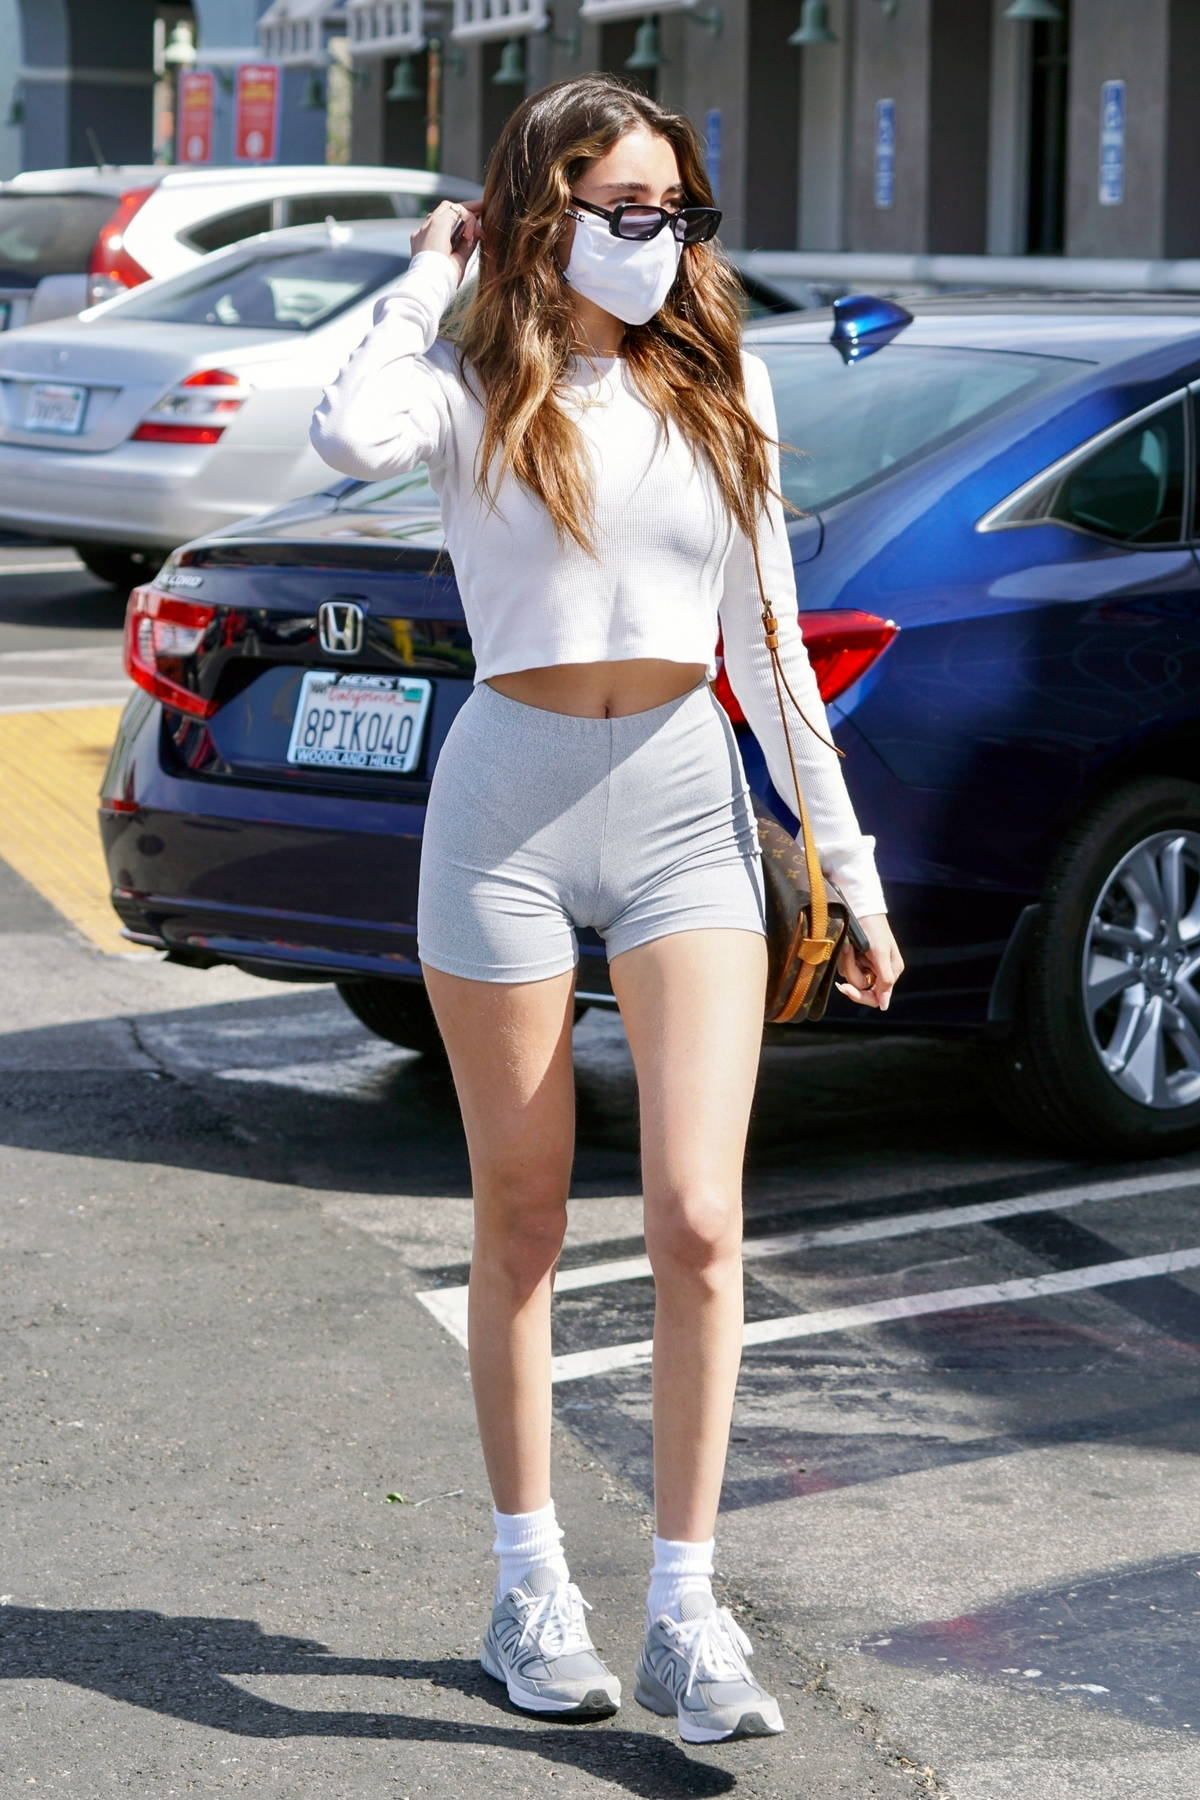 Madison Beer shows off her taut figure in tiny grey shorts while out for lunch with Nick Austin in West Hollywood, California